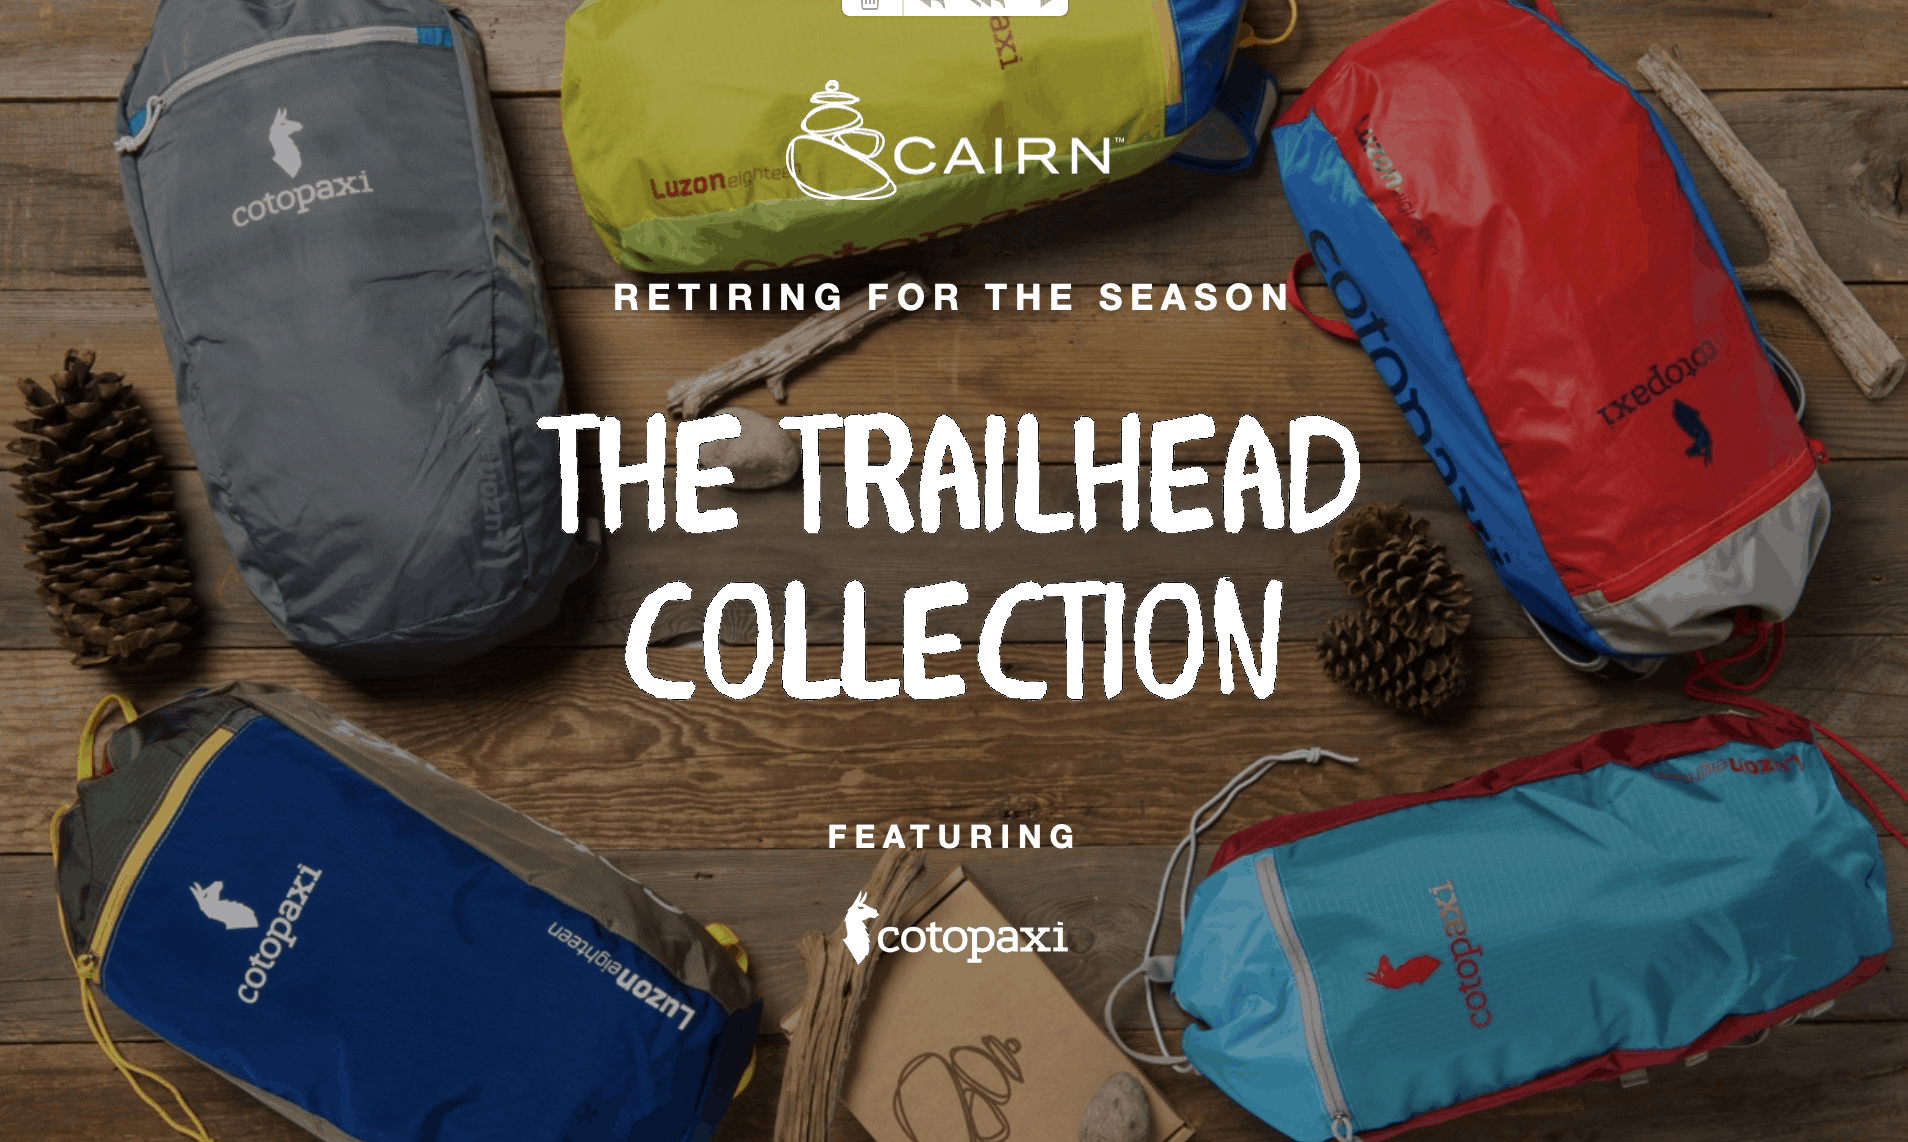 Last Chance to Get The Trailhead Collection As Your First Cairn Box!